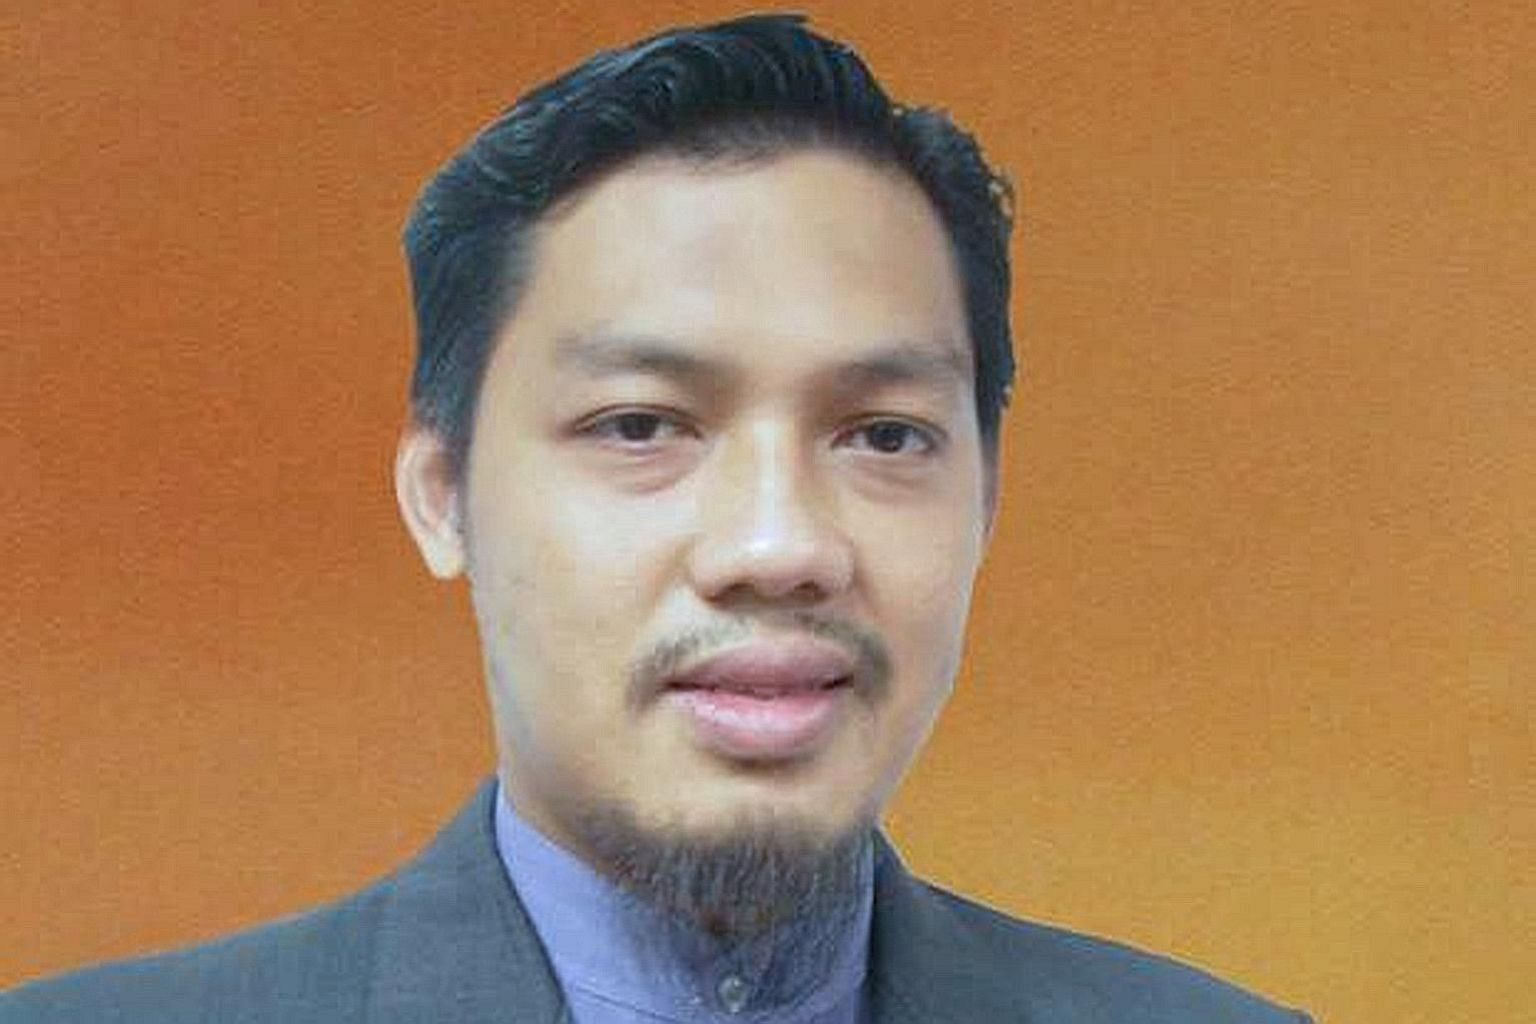 Former lecturer Mahmud Ahmad fled to the Philippines after being exposed as an extremist by police in 2014.